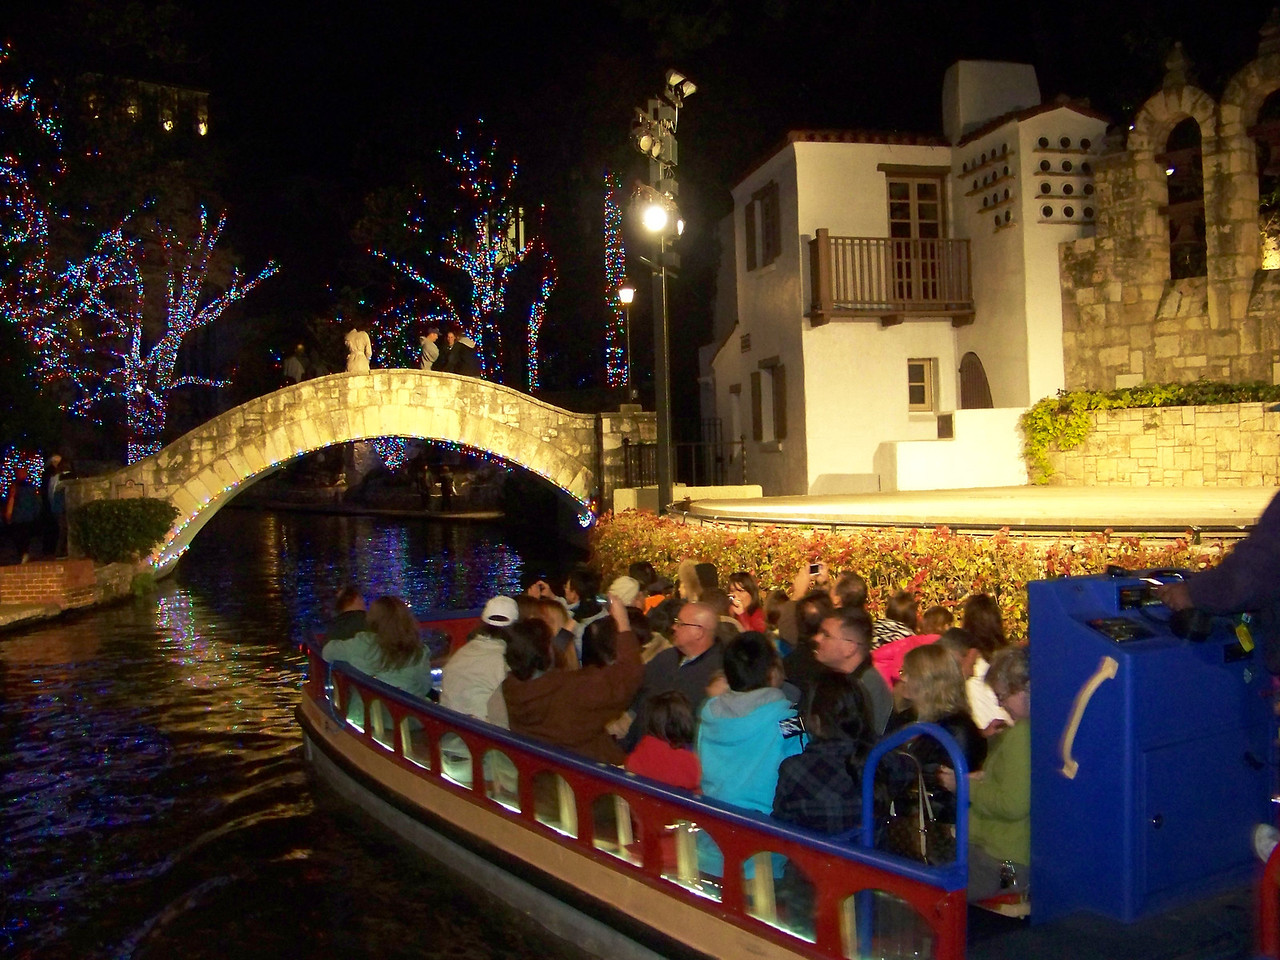 San Antonio River Walk.  Here's one of the boats your can ride on the river.  Casa Rio also runs a boat with table seating so you can eat dinner as you cruise the river.